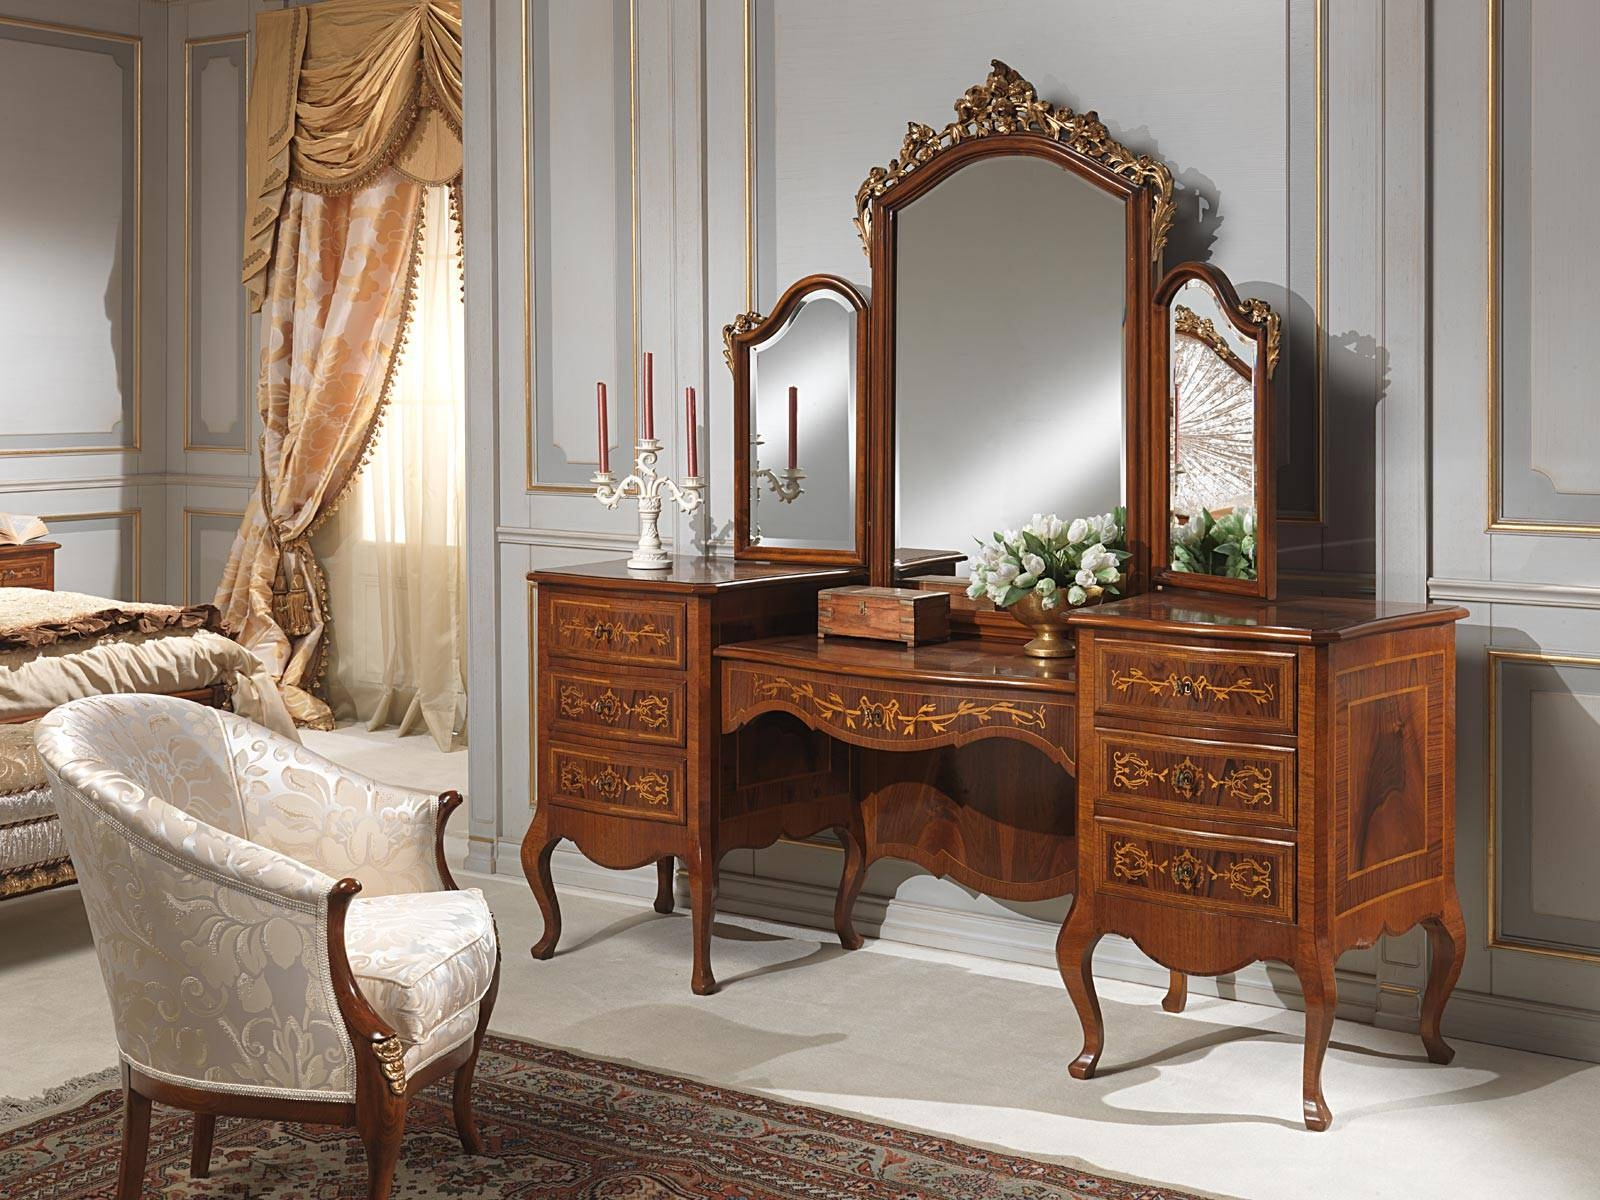 15 Ideas of Full Length Antique Dressing Mirrors